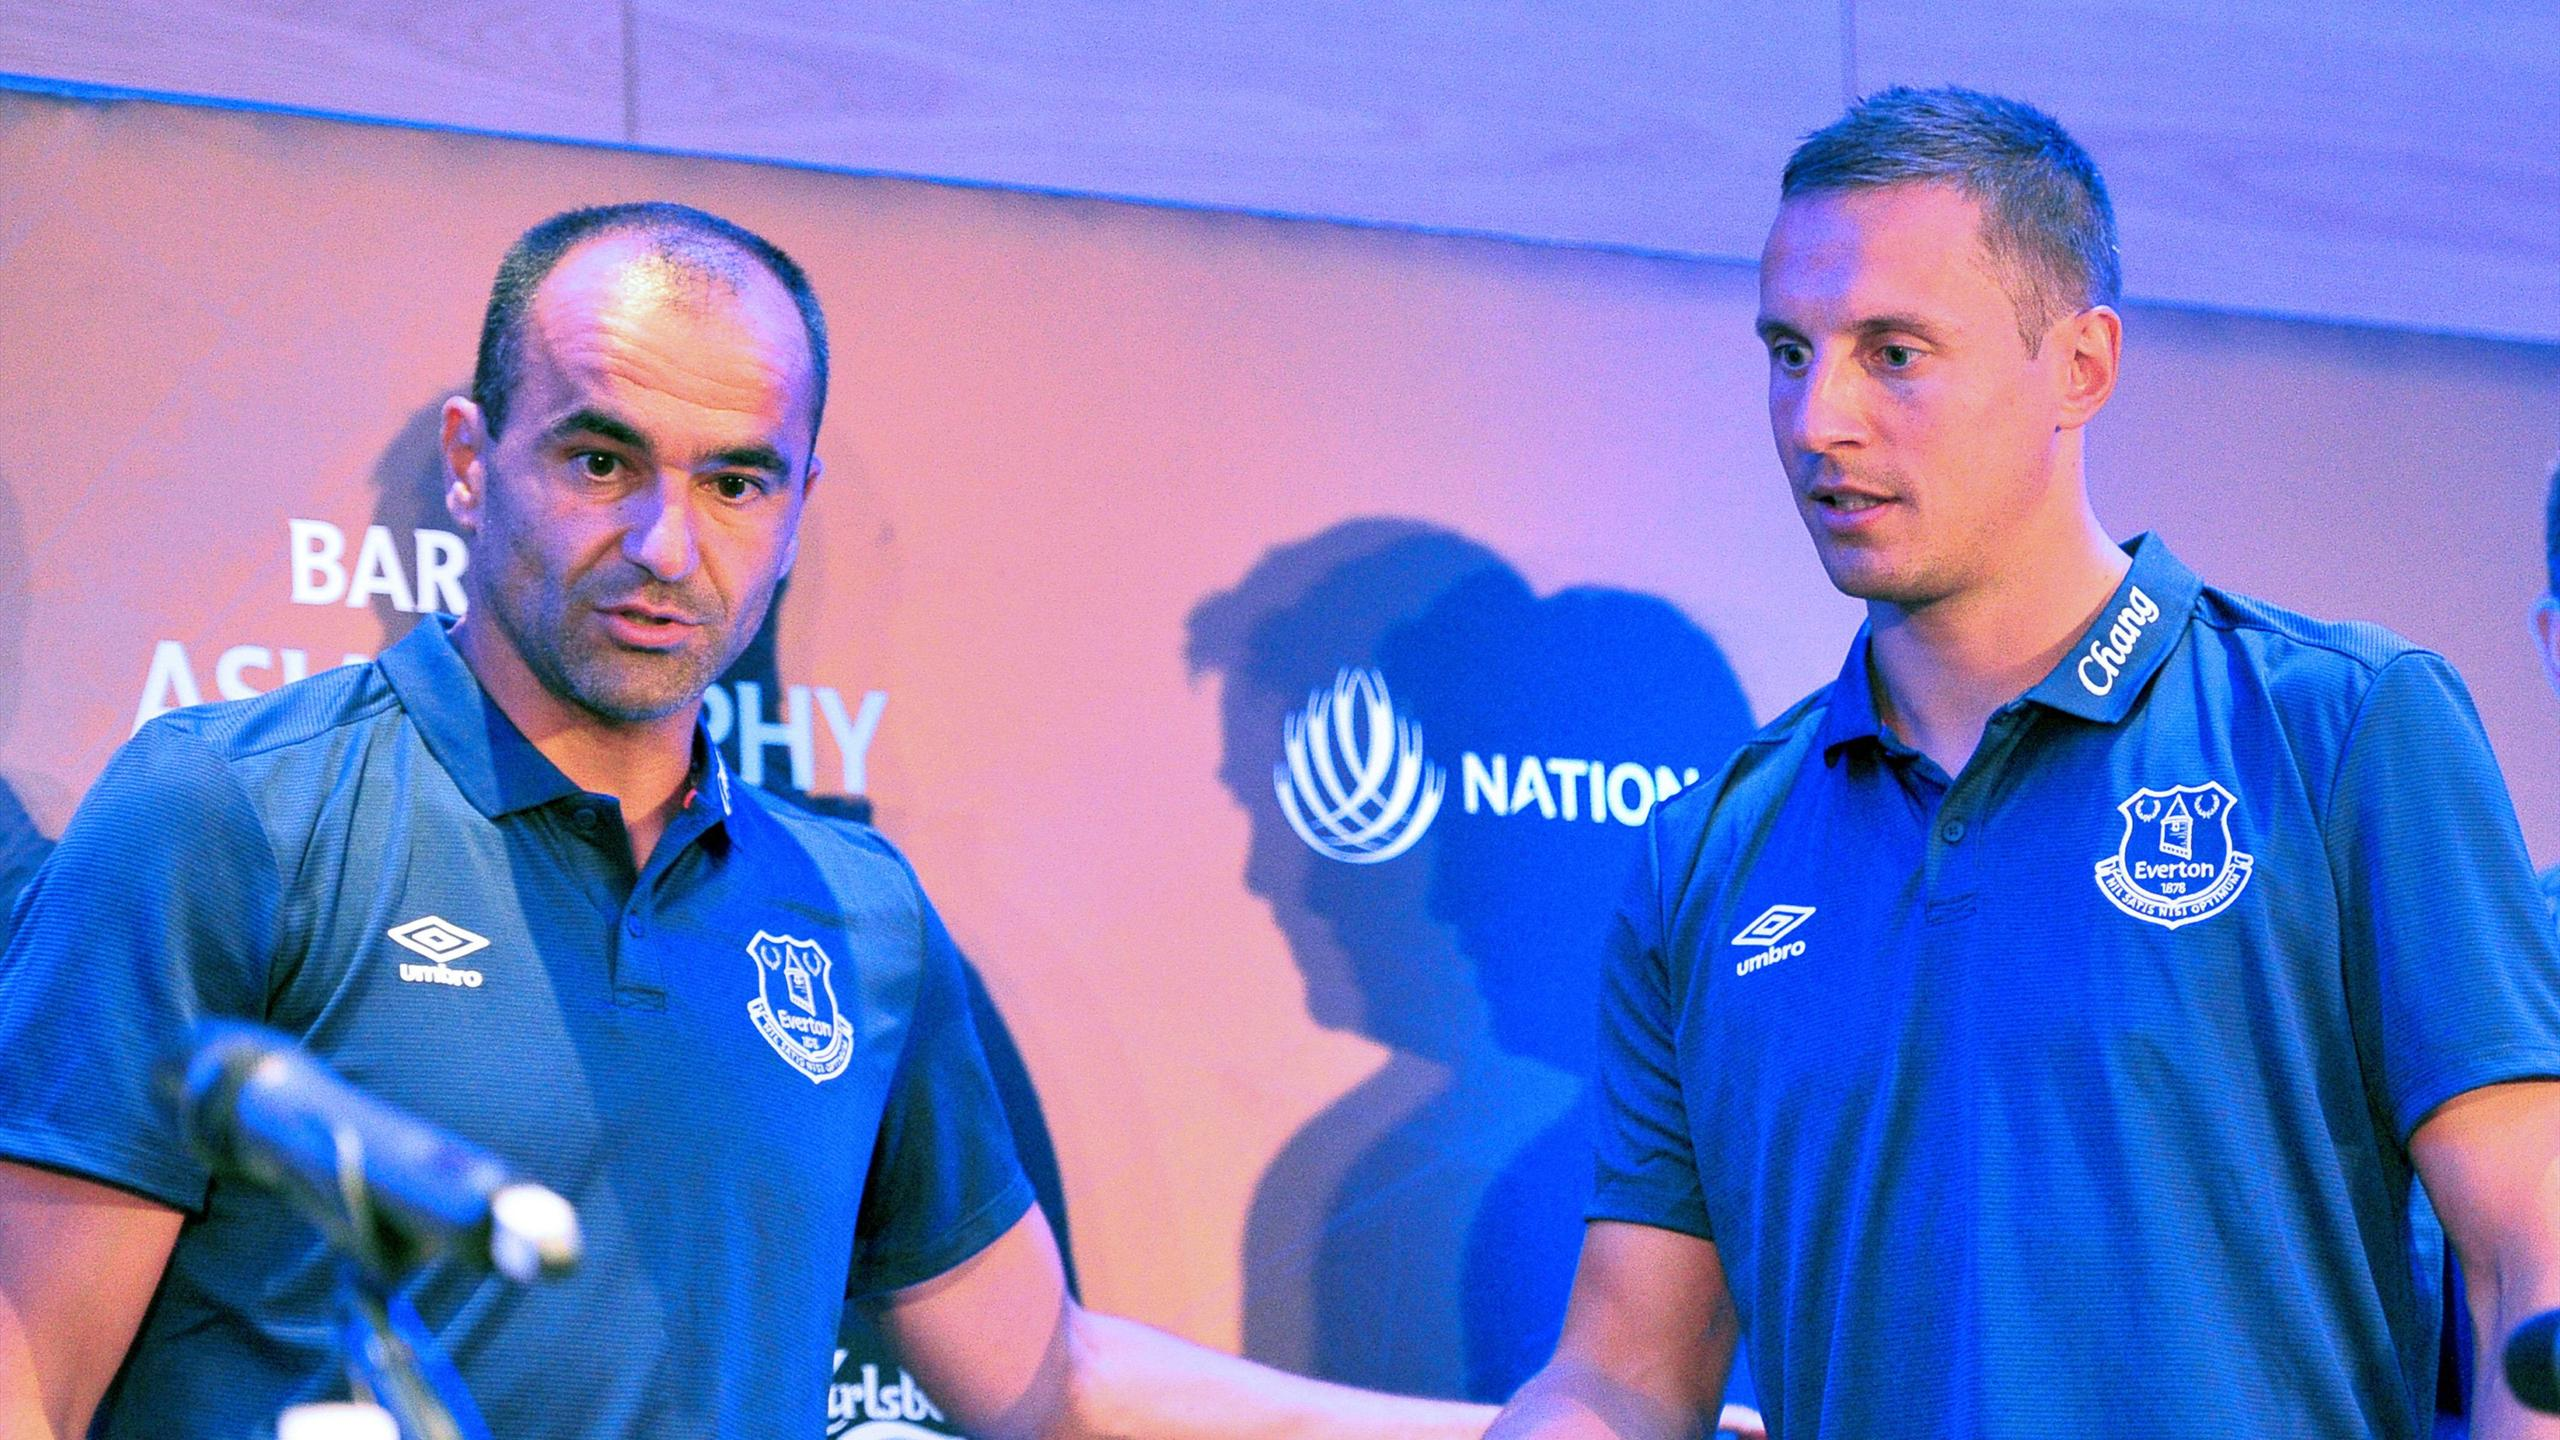 Everton manager Roberto Martinez (L) and club captain Phil Jagielka (R) attend a press conference in Singapore